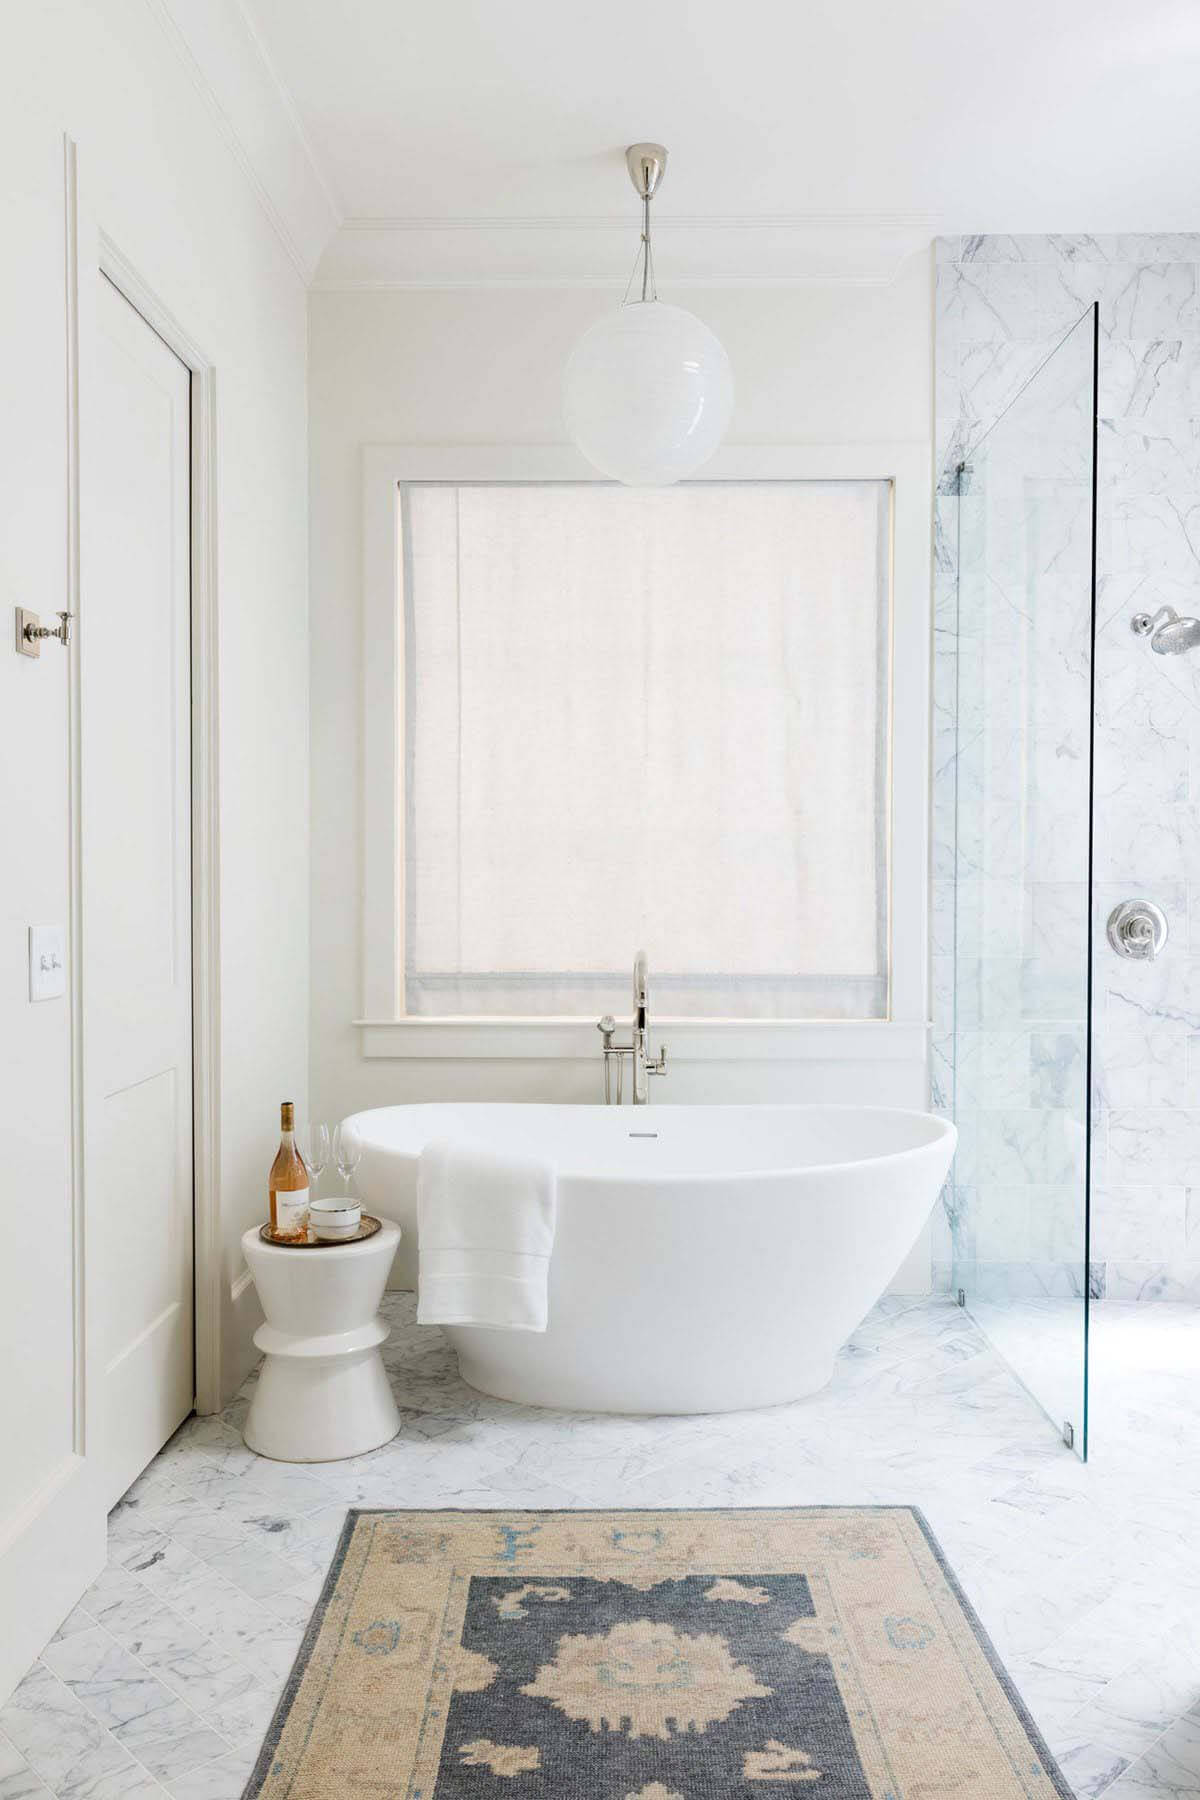 All-white master bathroom with vintage rug in Orr home